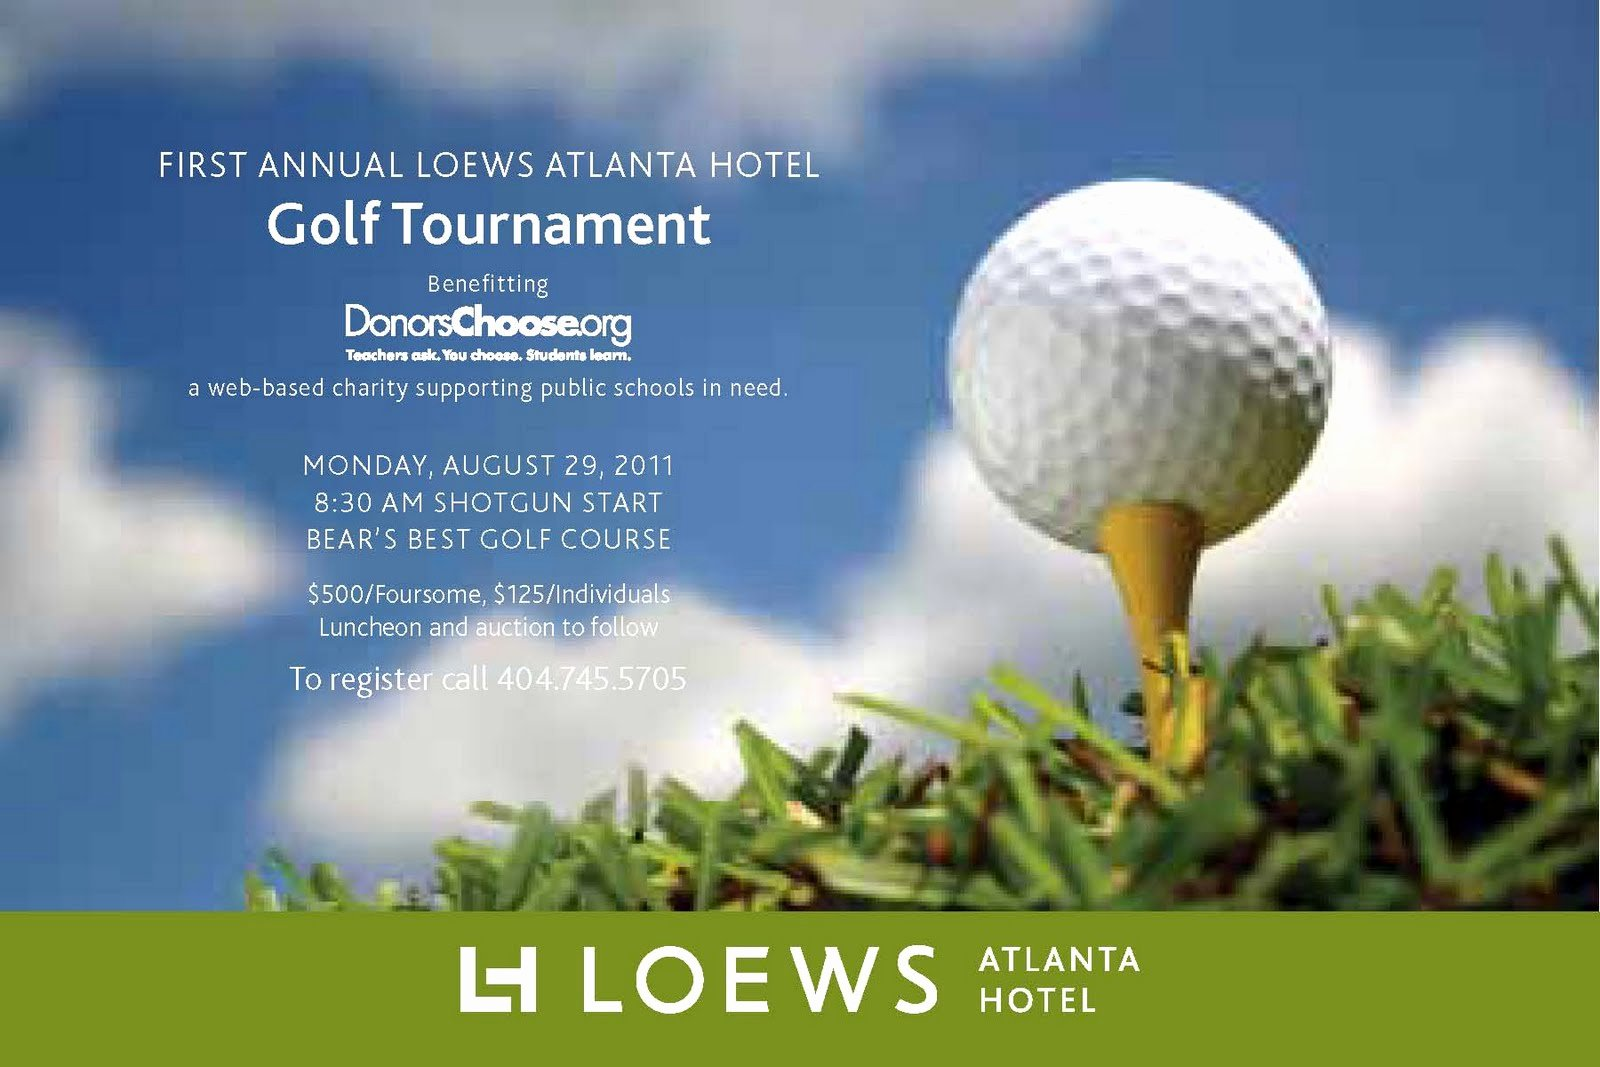 Golf tournament Invitation Template Free Beautiful Everything Midtown atlanta Join Loews atlanta Hotel for their First Annual Golf tournament